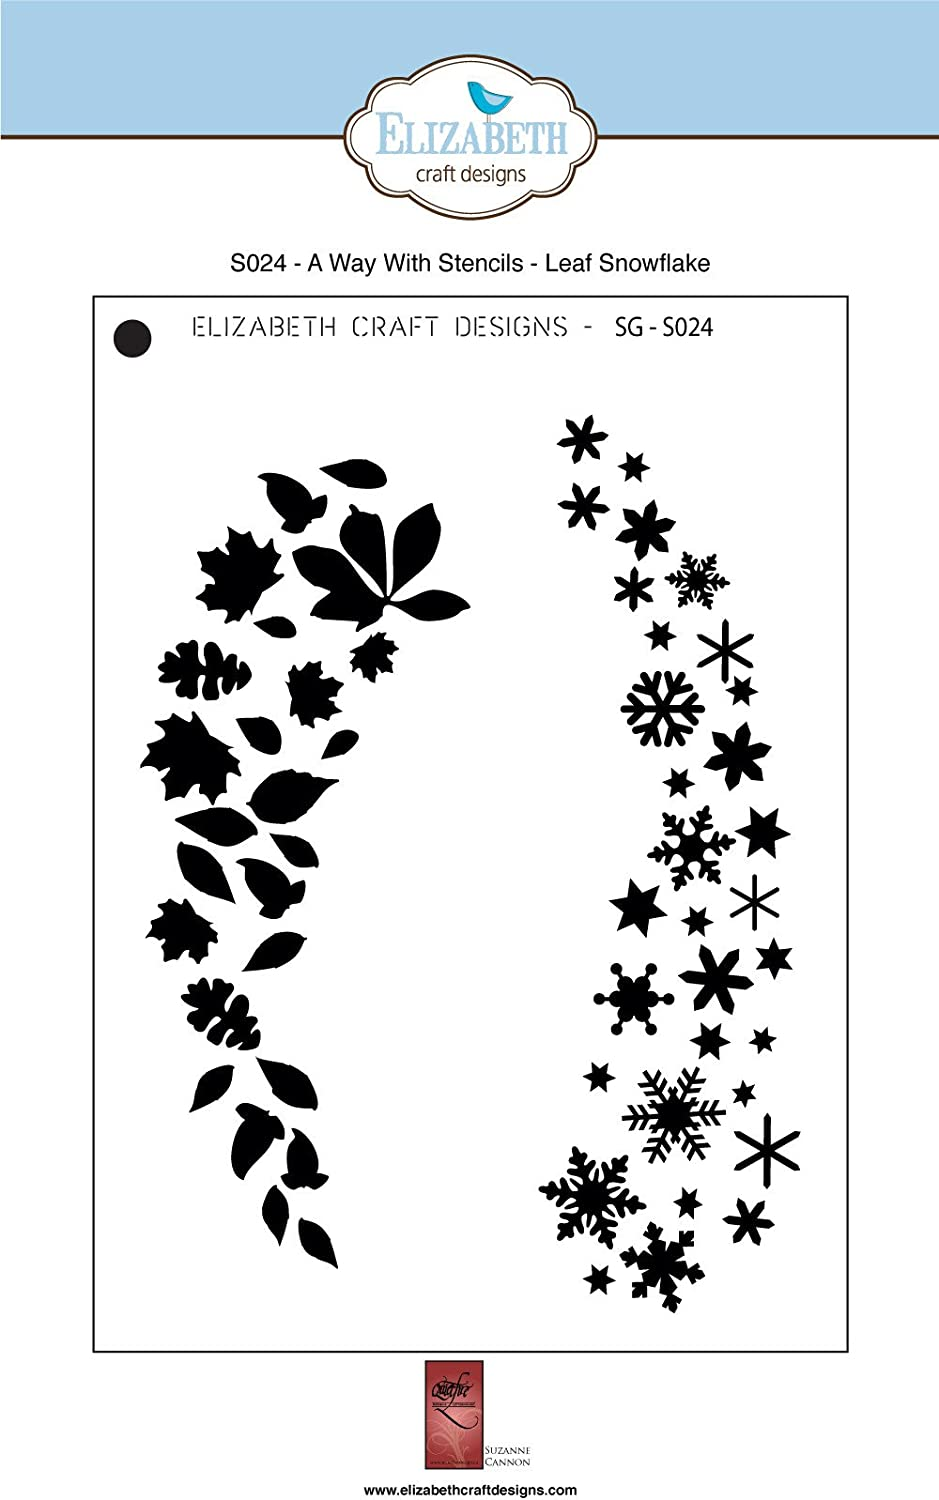 "ELIZABETH CRAFTS DESIGN A Way with Stencils LEAF SNOWFLAKE 5 x 7/"" ECDS024"